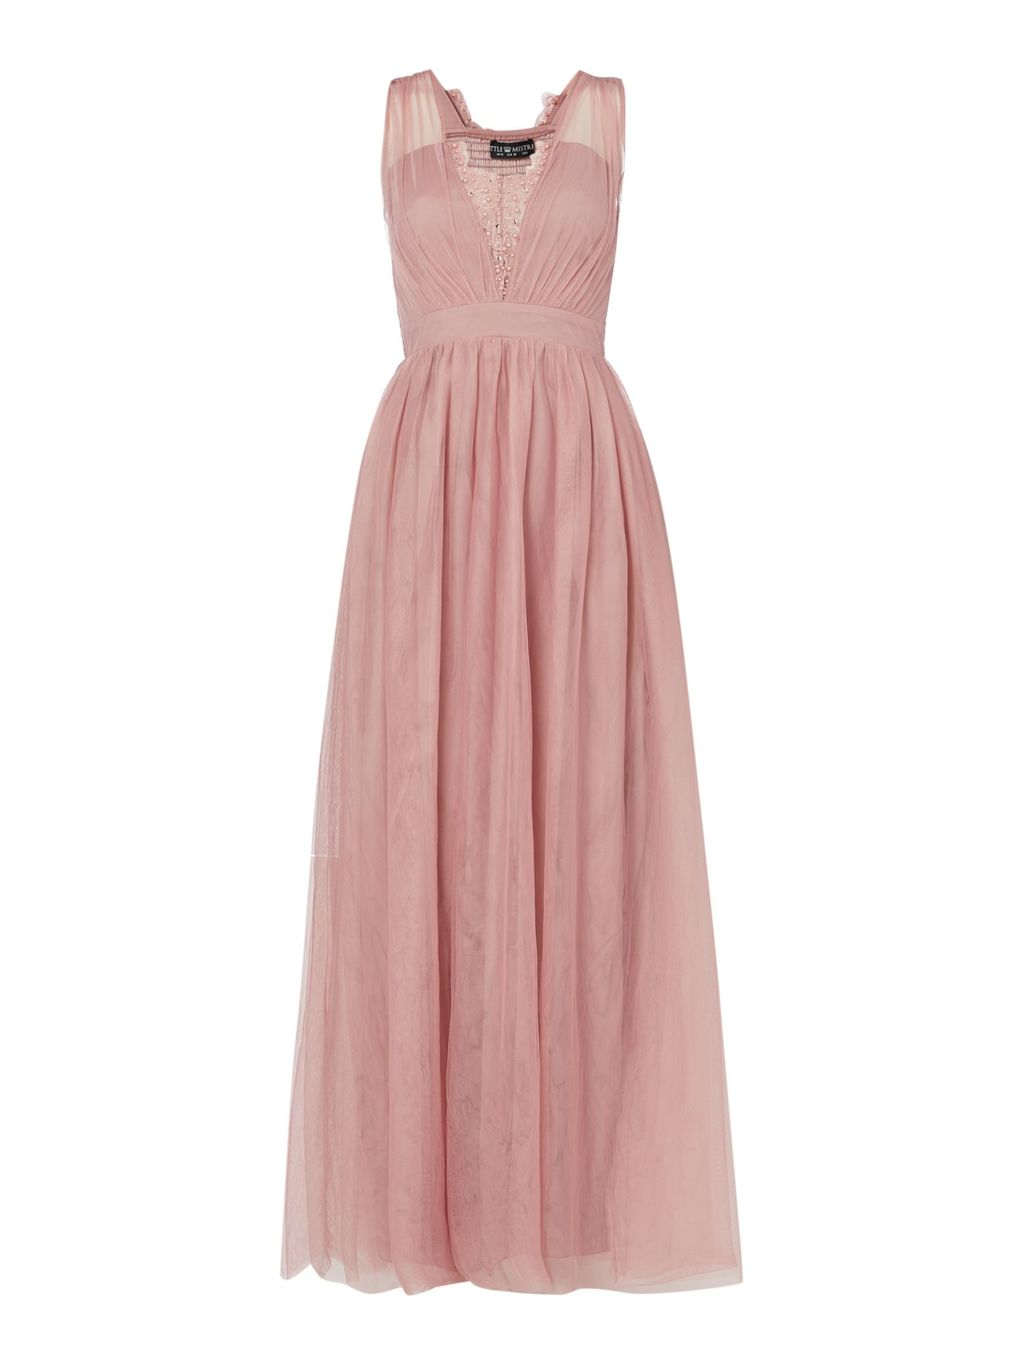 Sleeveless Chiffon Maxi Dress, Pink - sleeve style: wide vest straps; neckline: v-neck; pattern: plain; style: maxi dress; length: ankle length; bust detail: added detail/embellishment at bust; predominant colour: pink; fit: soft a-line; fibres: polyester/polyamide - 100%; occasions: occasion; sleeve length: sleeveless; texture group: sheer fabrics/chiffon/organza etc.; pattern type: fabric; pattern size: standard; embellishment: beading; season: s/s 2016